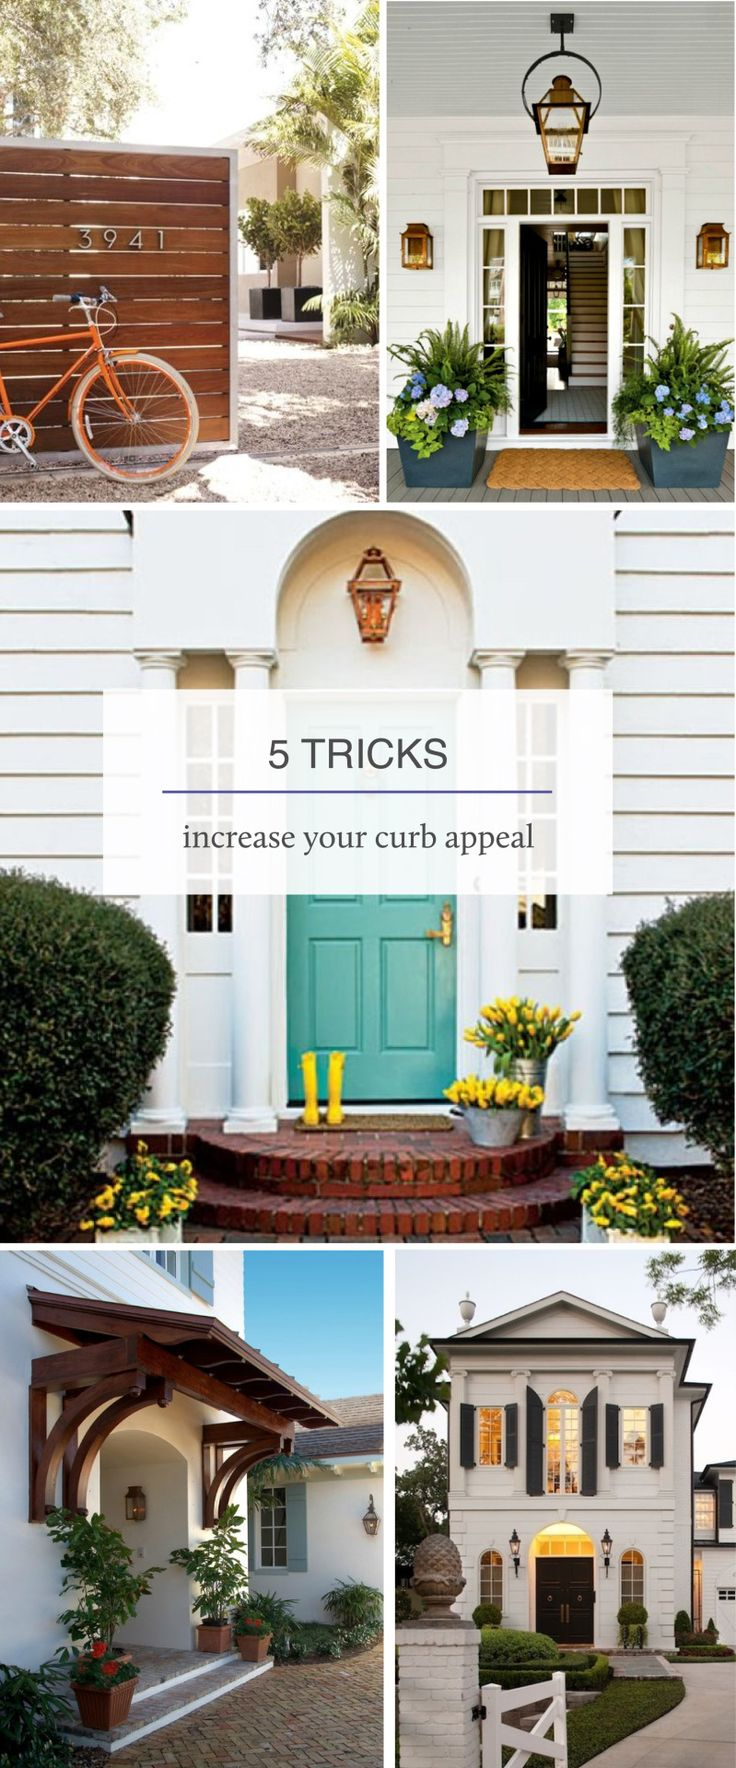 302 Best Images About Front Facade Kerb Appeal On Pinterest: 220 Best CURBSCAPING: Curb Appeal With Flowers & Gardens Images On Pinterest